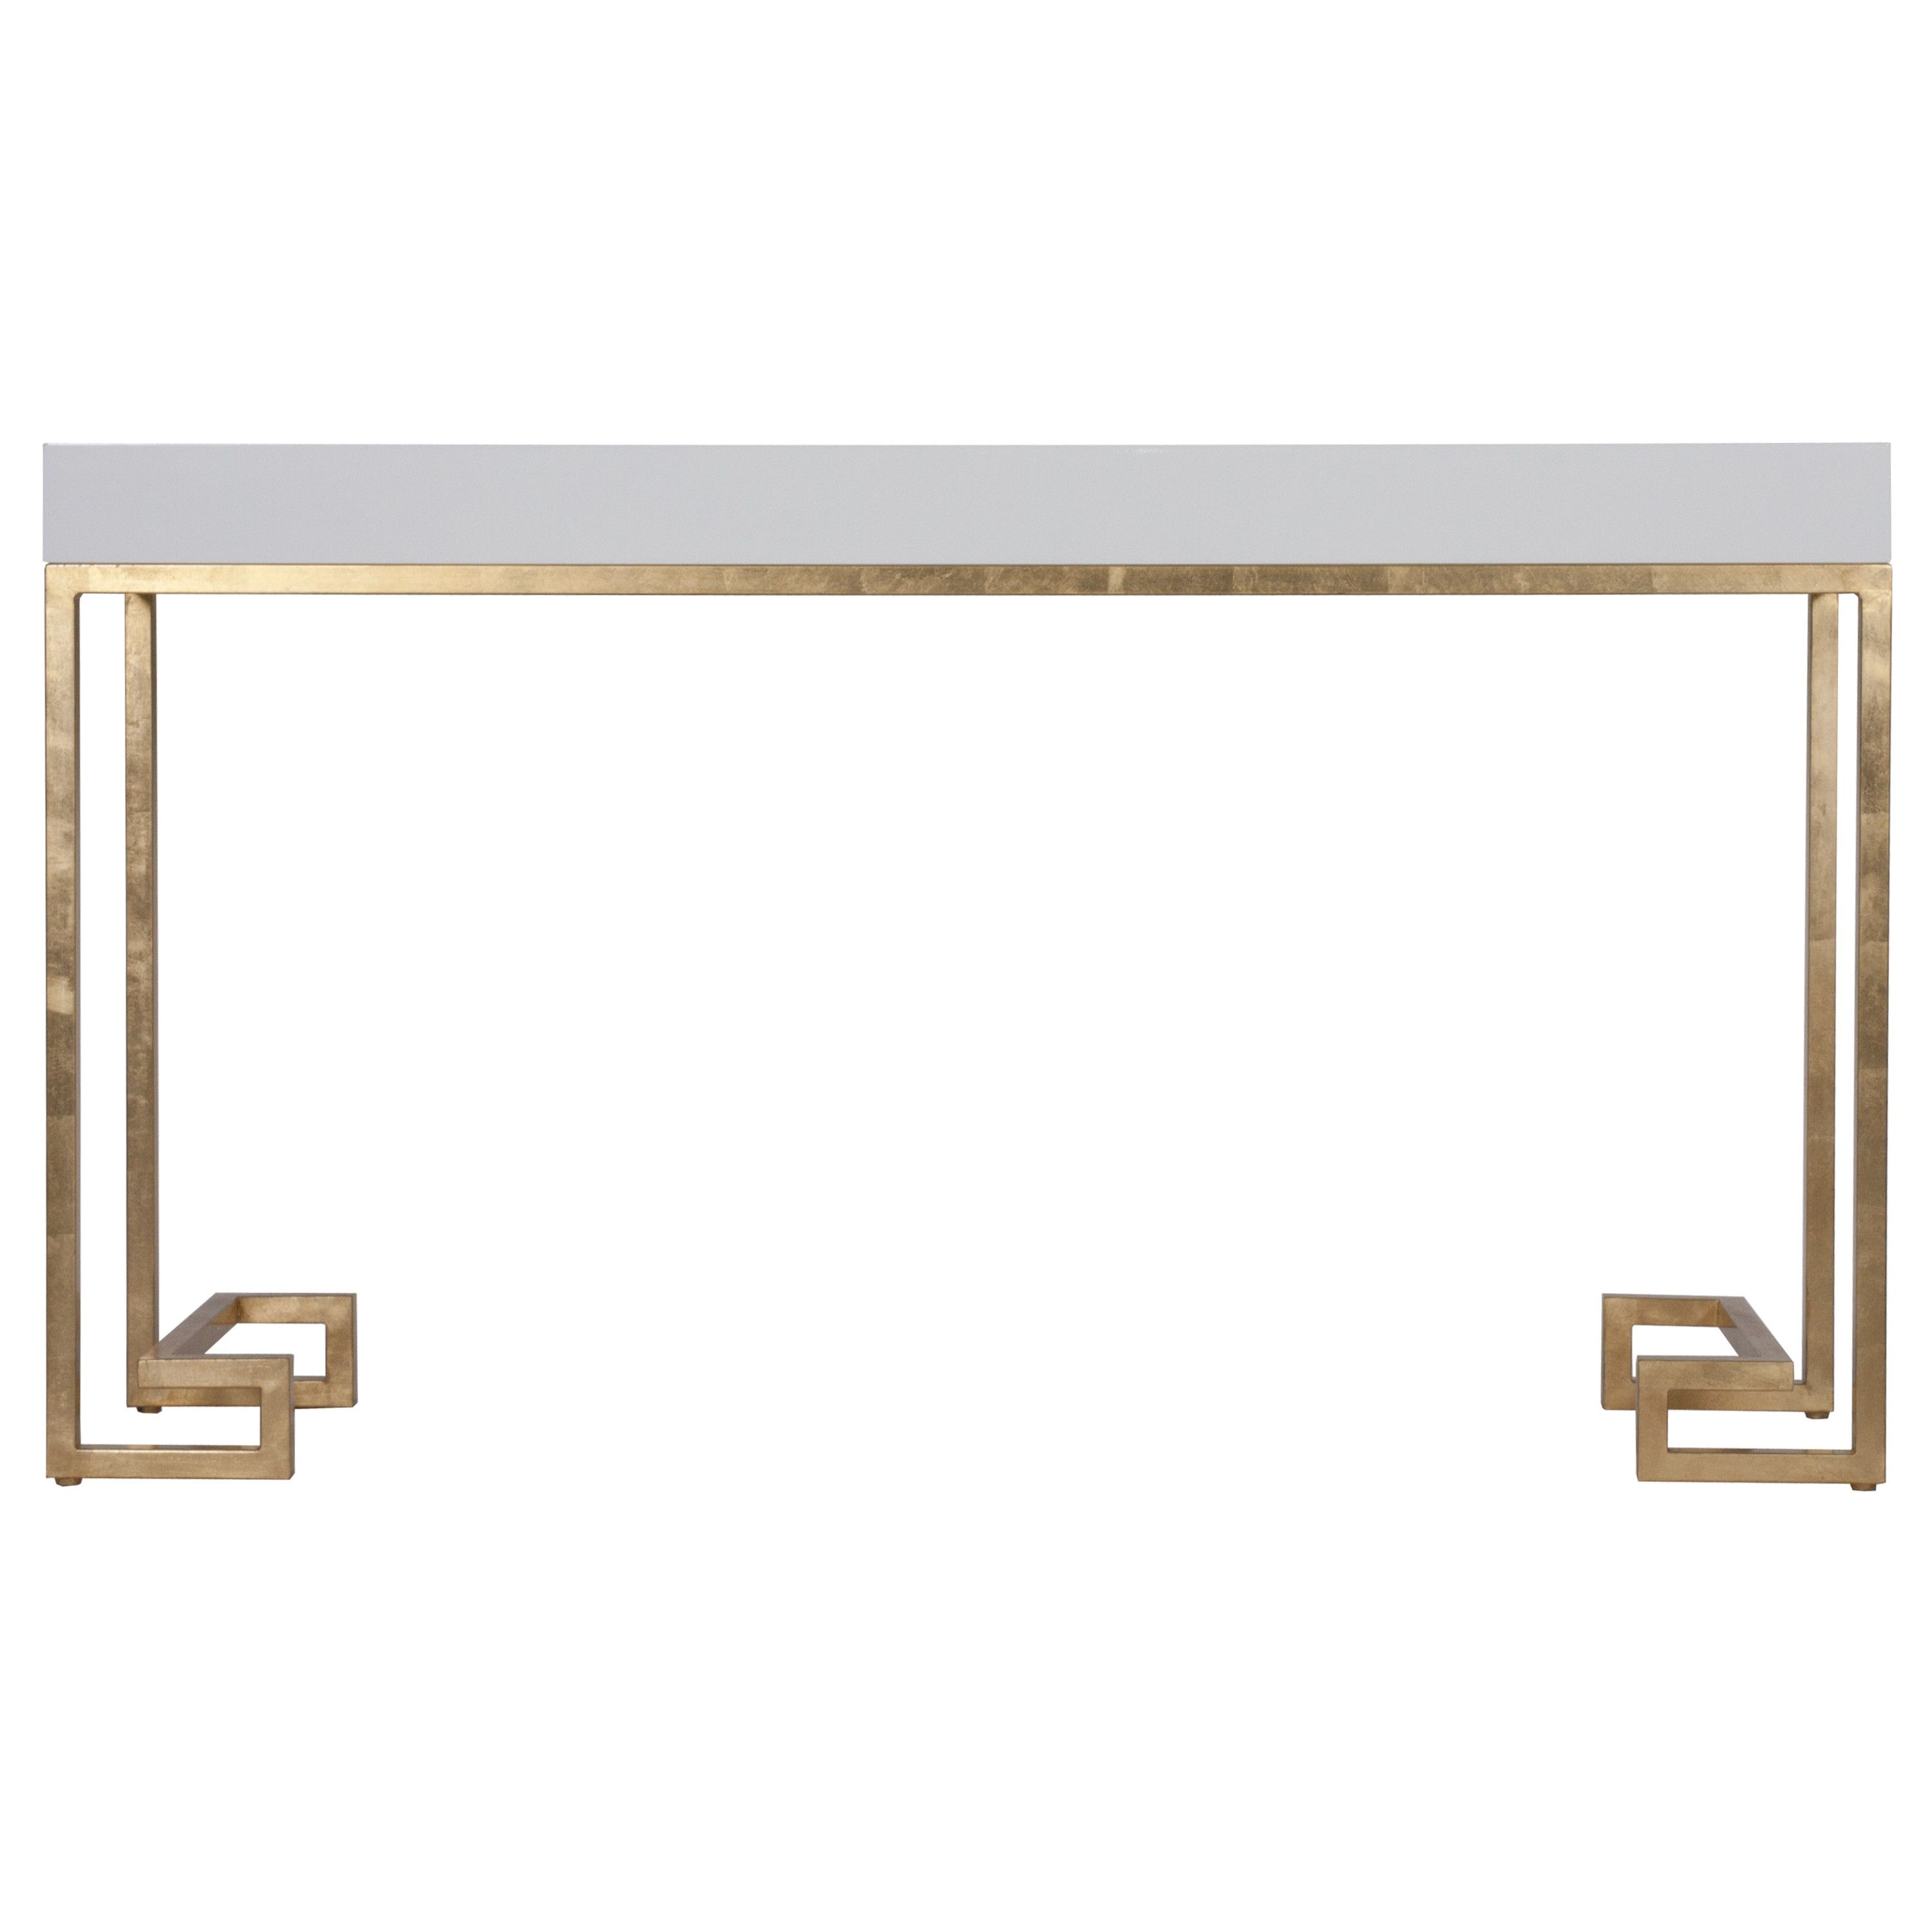 Modern hallway storage gold console table gold metal console table - Tables Worlds Away Barsanti White Lacquer Console With Gold Leaf Greek Key Base